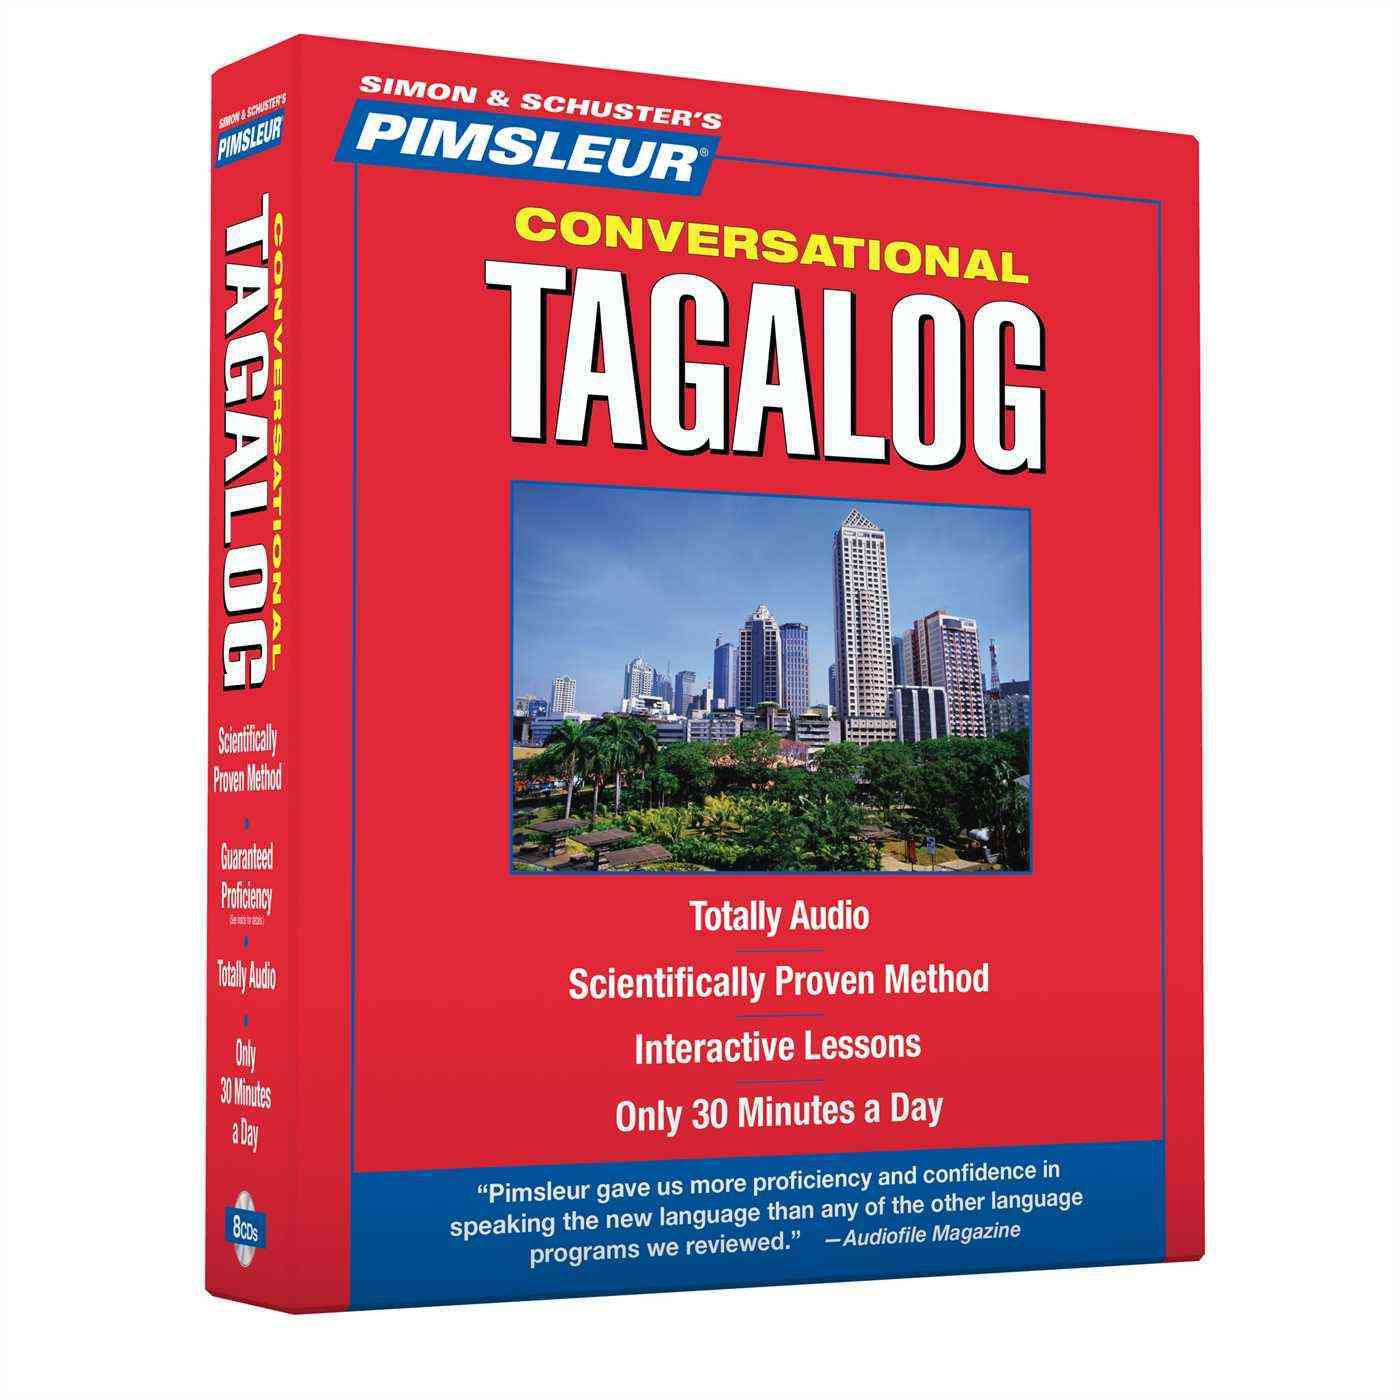 [CD] Pimsleur Conversational Tagalog By Pimsleur (COR)